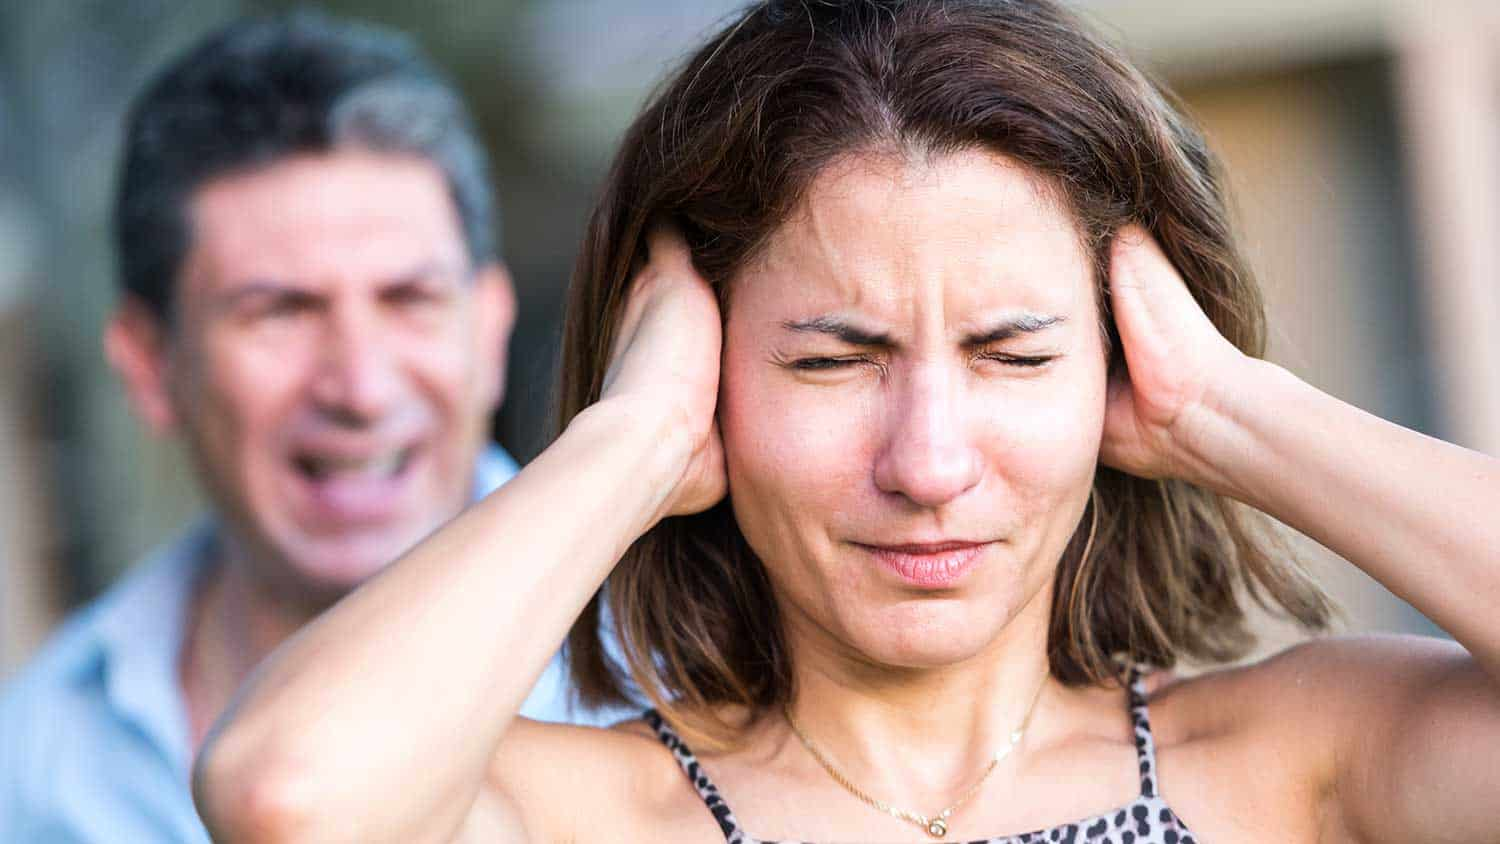 Man shouting at a woman who has her hands over her ears wincing with pain